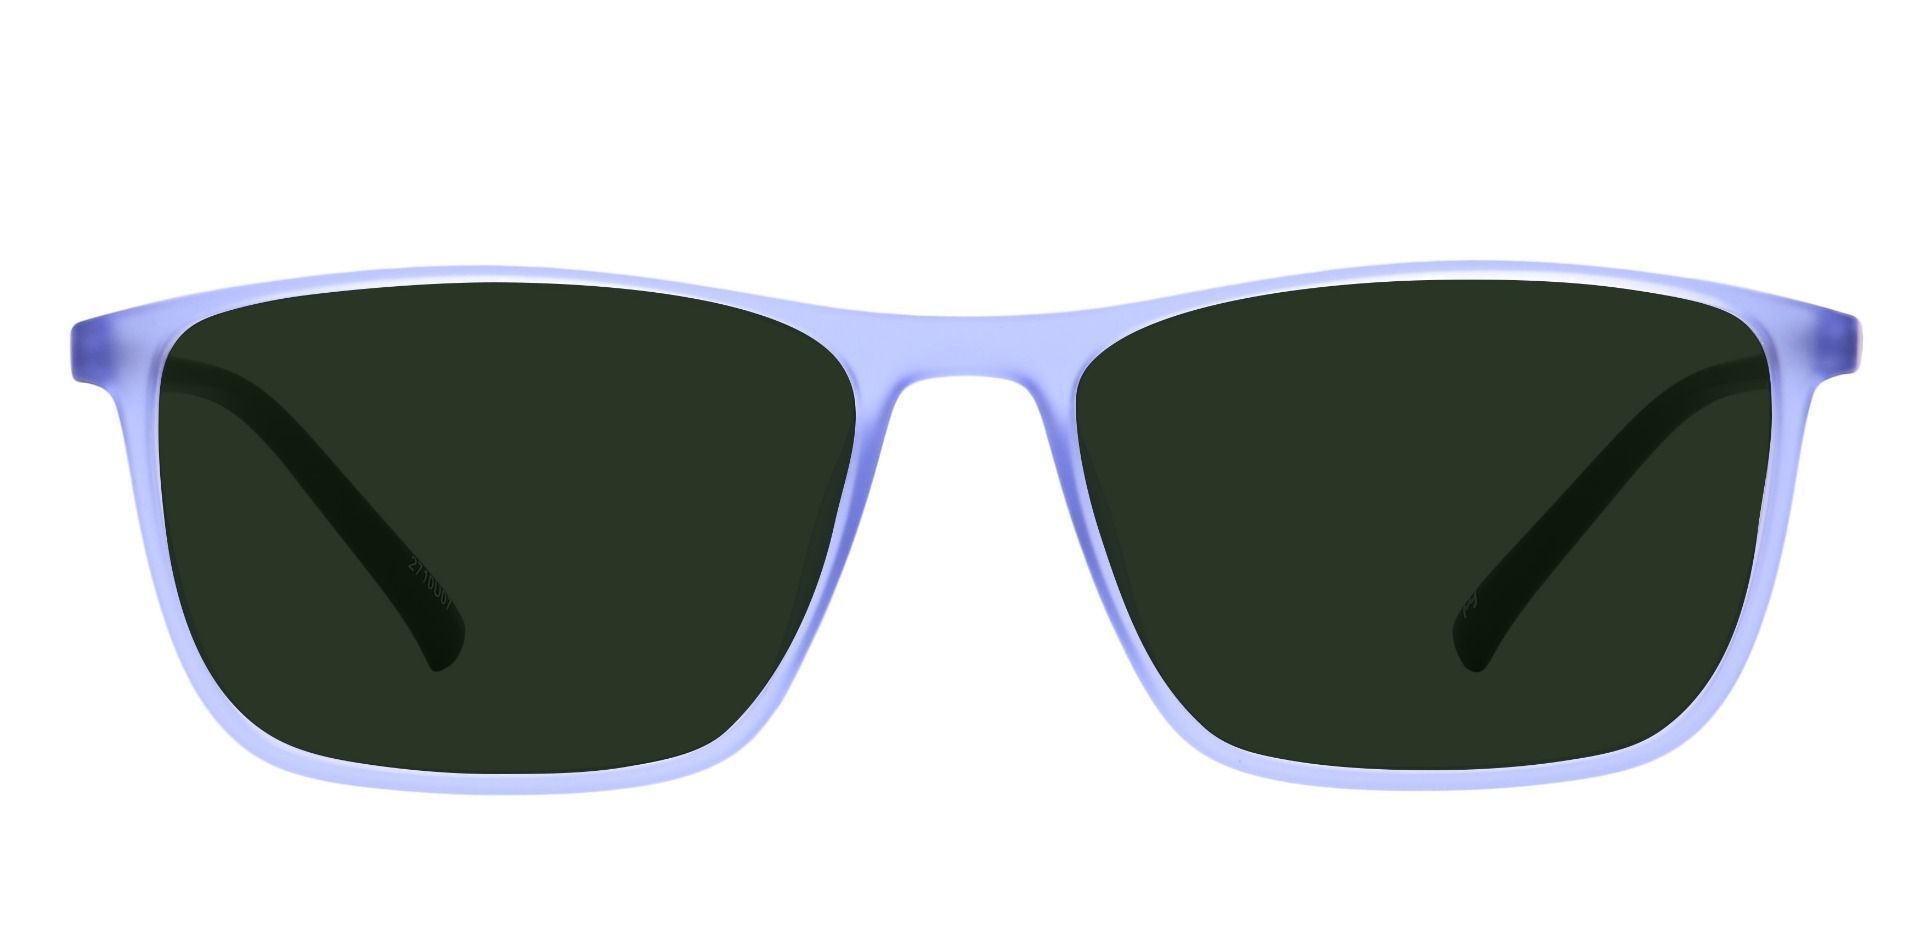 Candid Rectangle Prescription Sunglasses - Blue Frame With Green Lenses